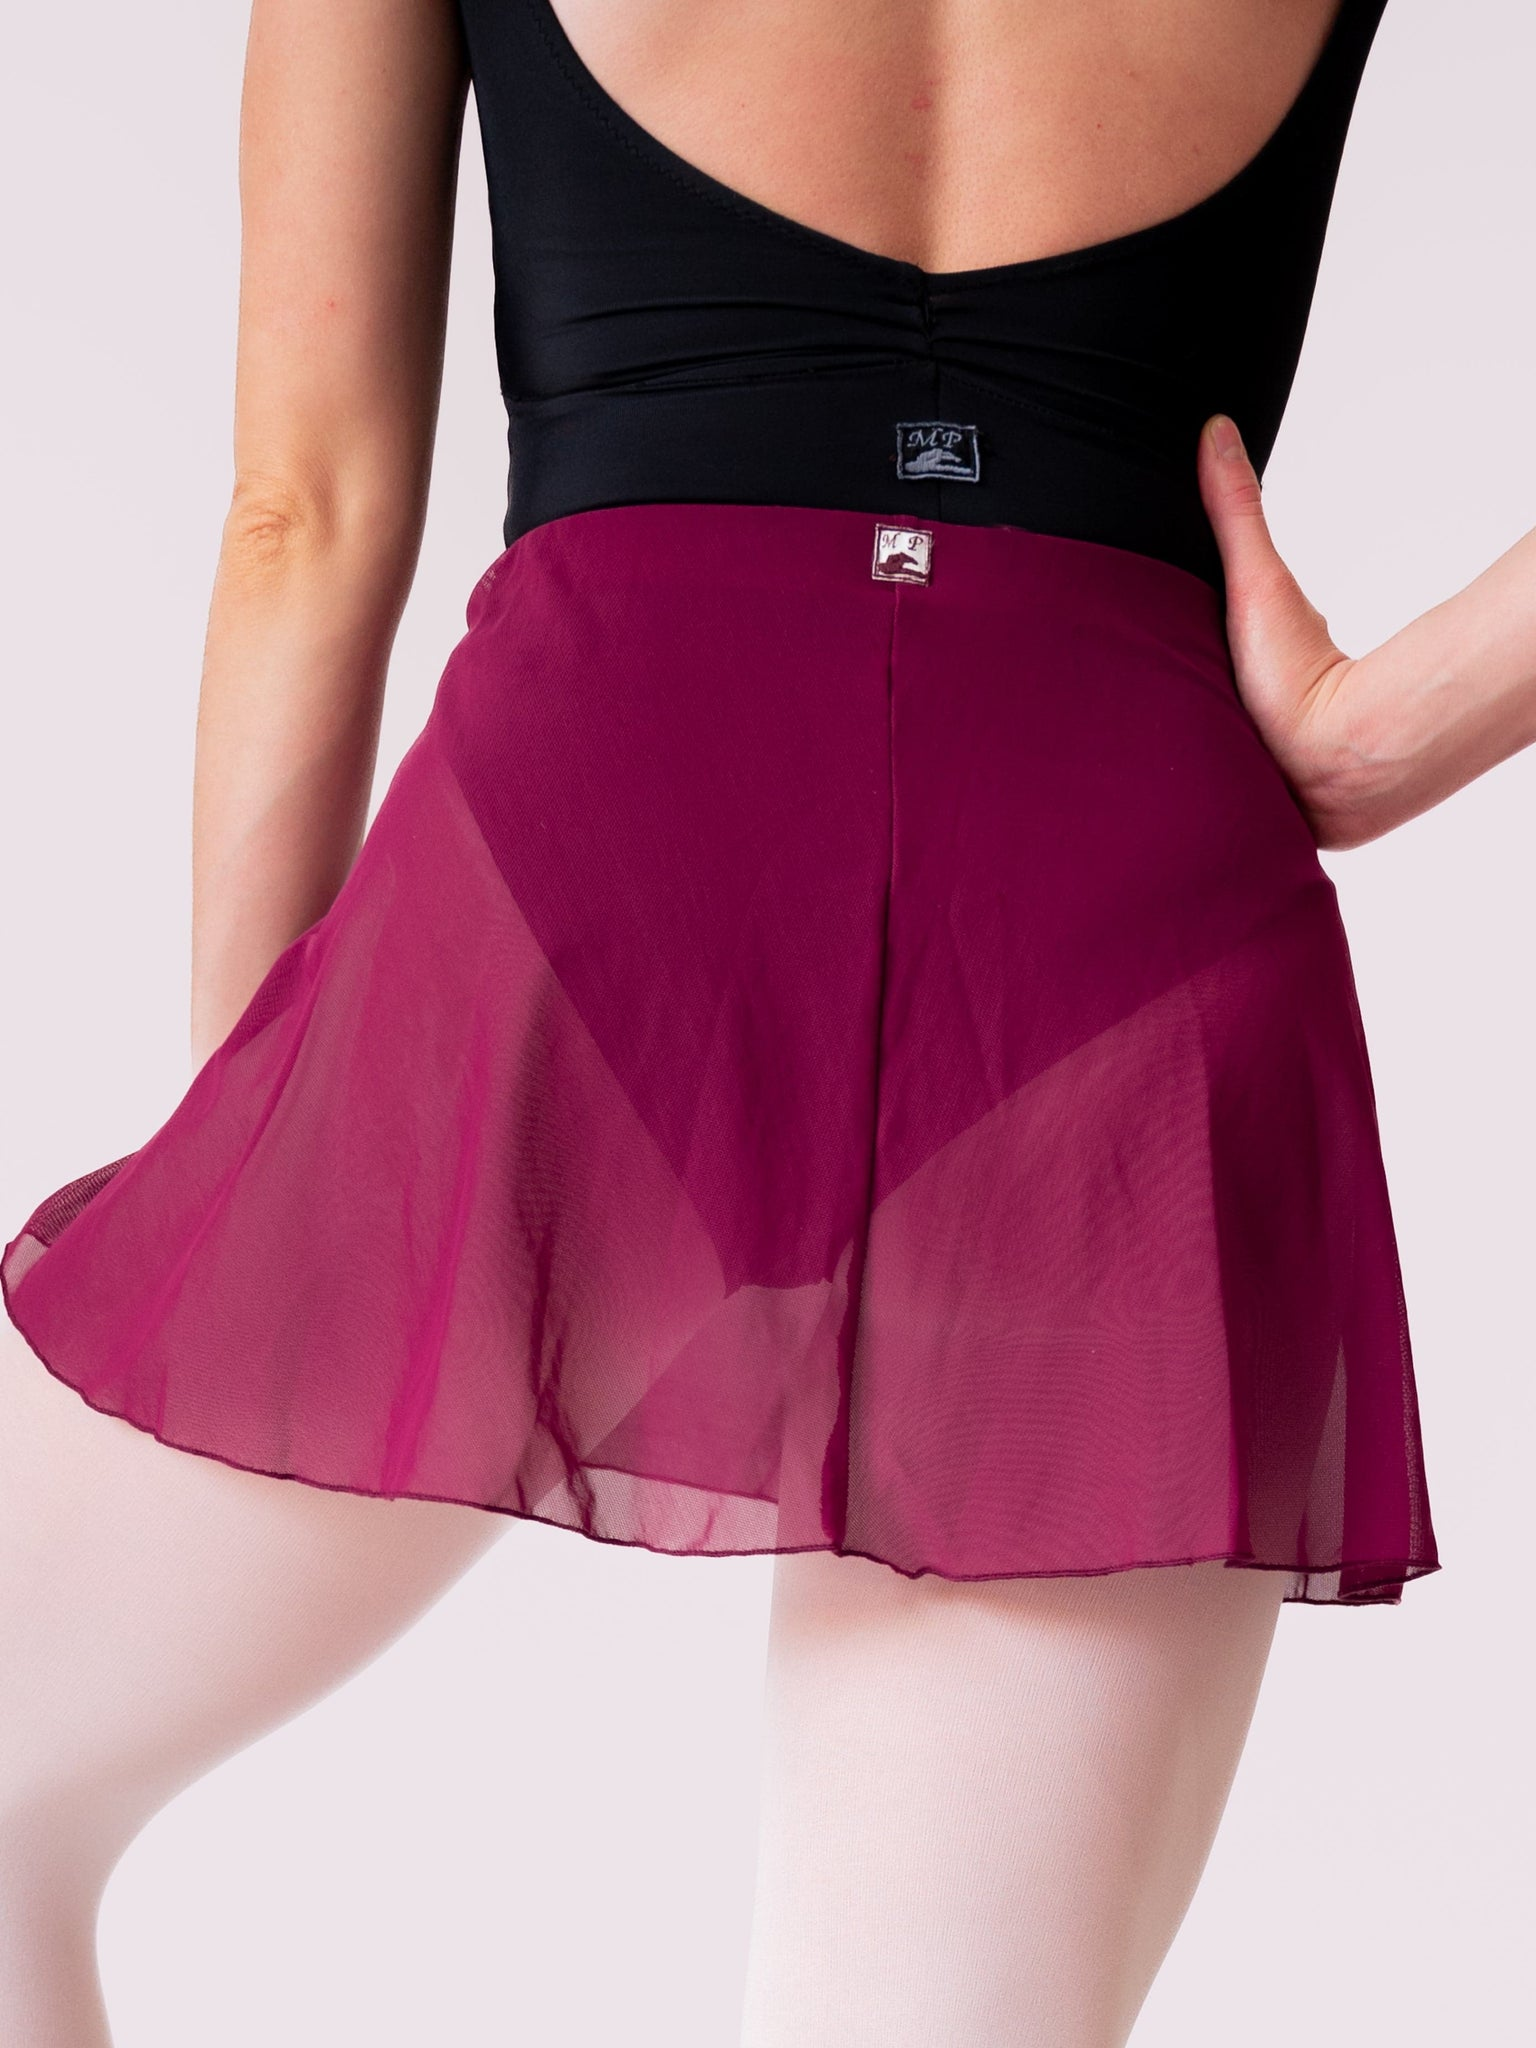 Red-purple Short Ballet Skirt for Girls and Women with Elastic Band in Mesh by Atelier della Danza MP